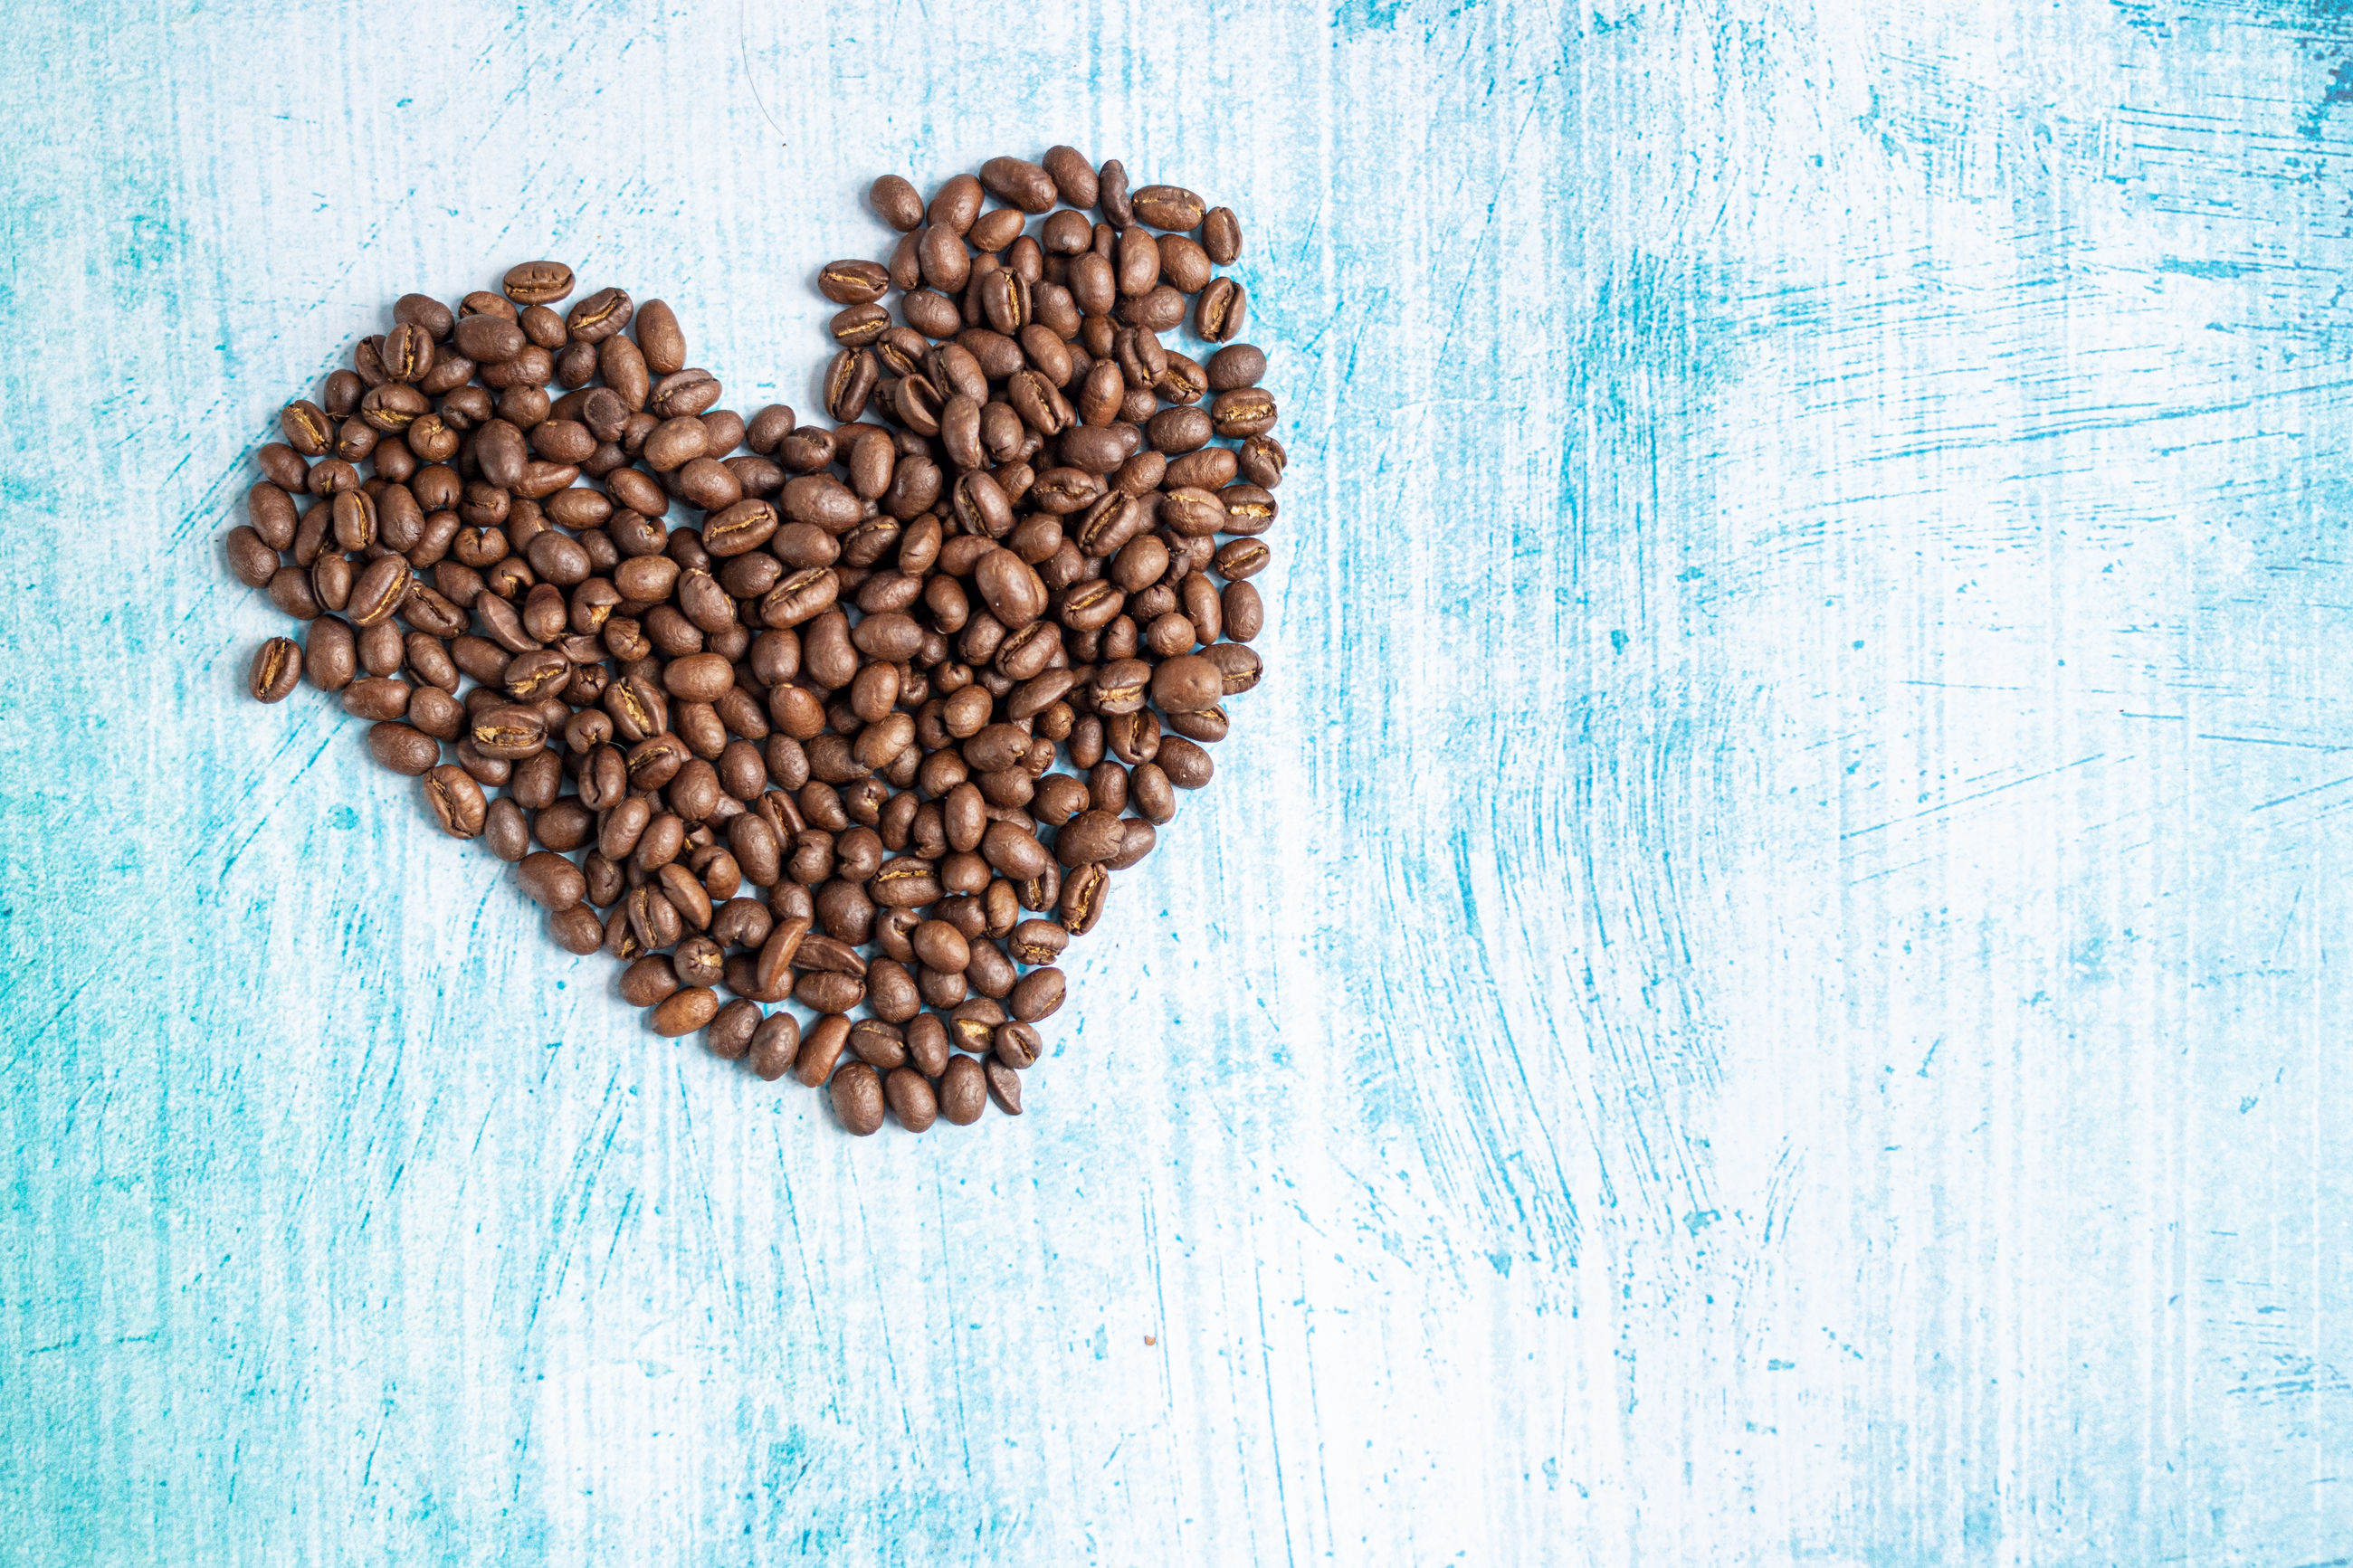 food and drink, food, directly above, large group of objects, blue, coffee, coffee - drink, indoors, abundance, roasted coffee bean, freshness, no people, studio shot, copy space, wood - material, high angle view, brown, heart shape, still life, love, positive emotion